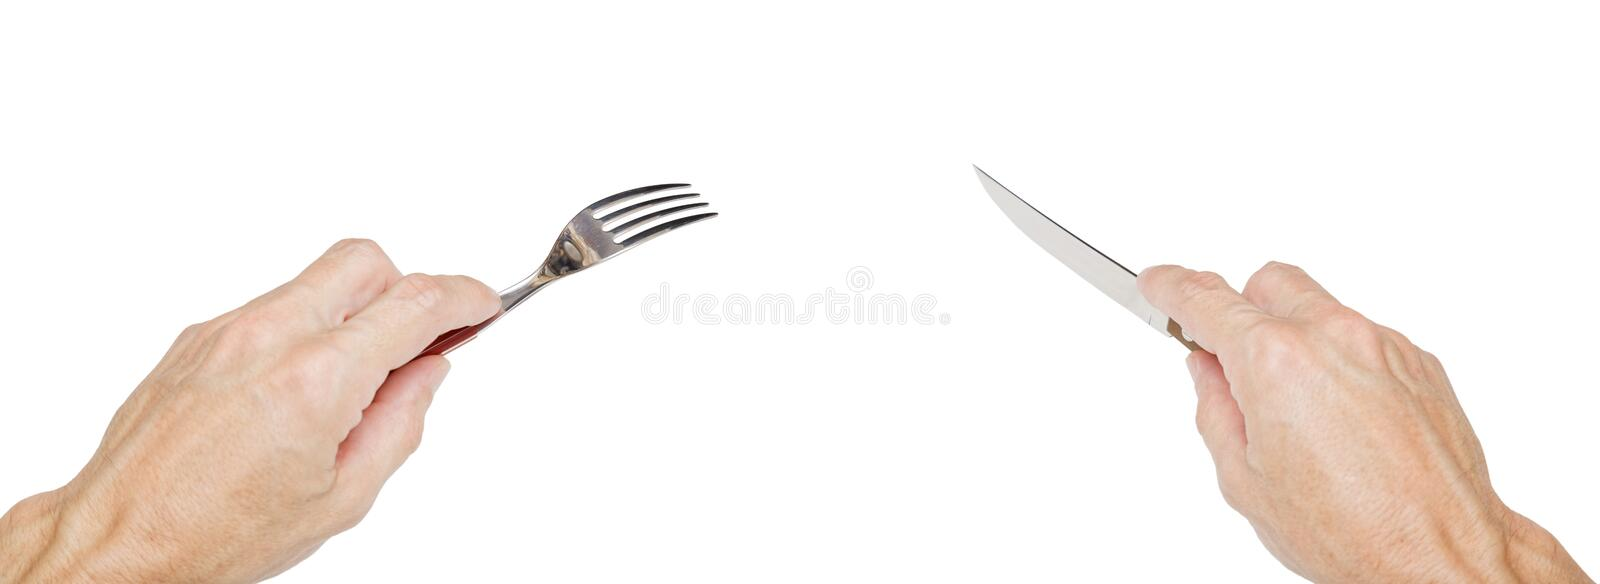 Humans hands holding a silver fork and knife. On white. Concept stock images